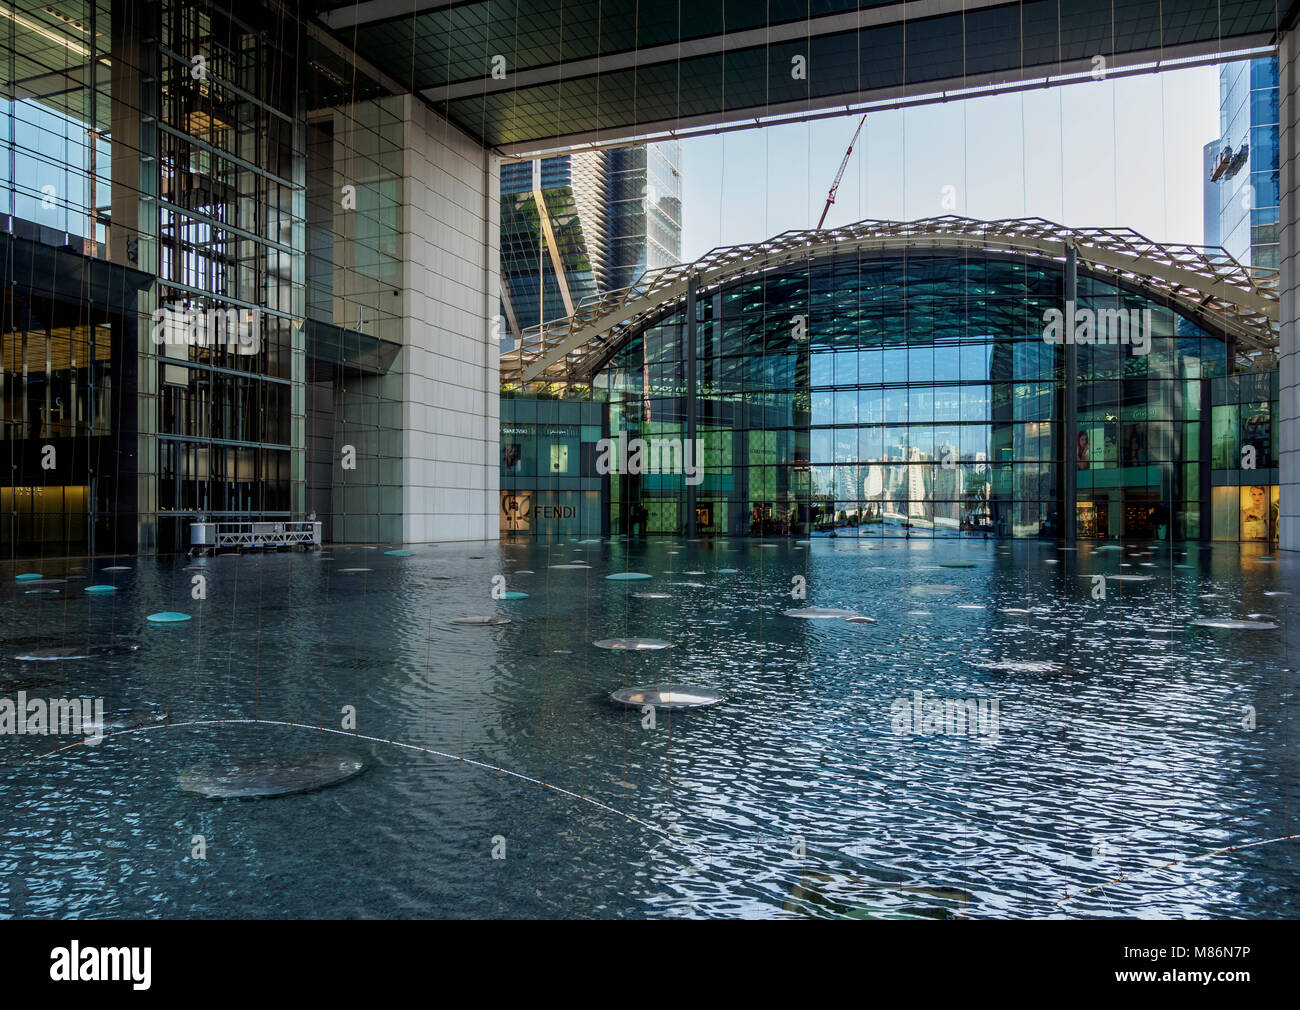 39555c7d0f28 Galleria Mall Stock Photos   Galleria Mall Stock Images - Alamy